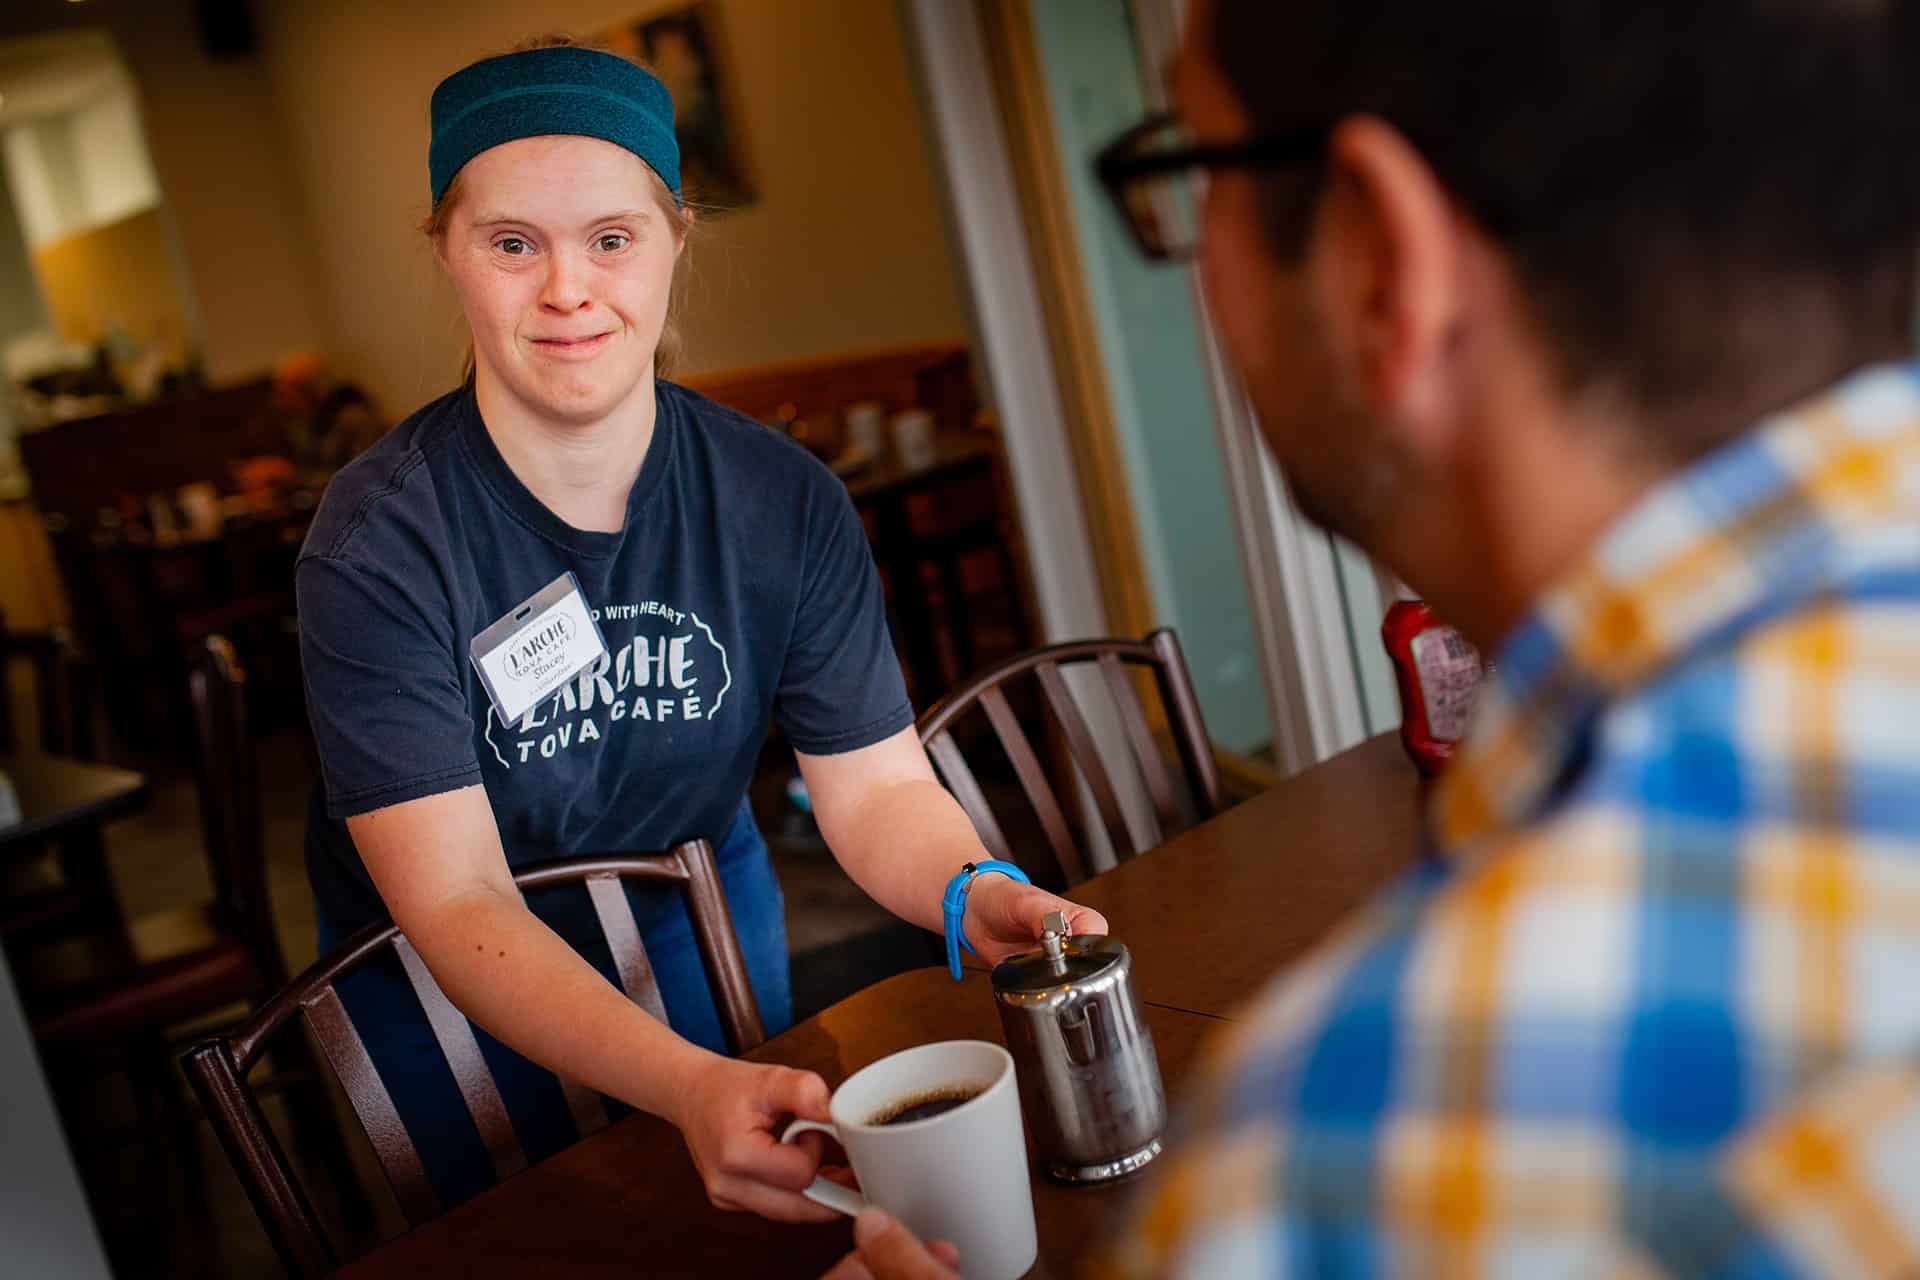 Stacey found community and purpose at L'Arche Tova Cafe - United Way Winnipeg